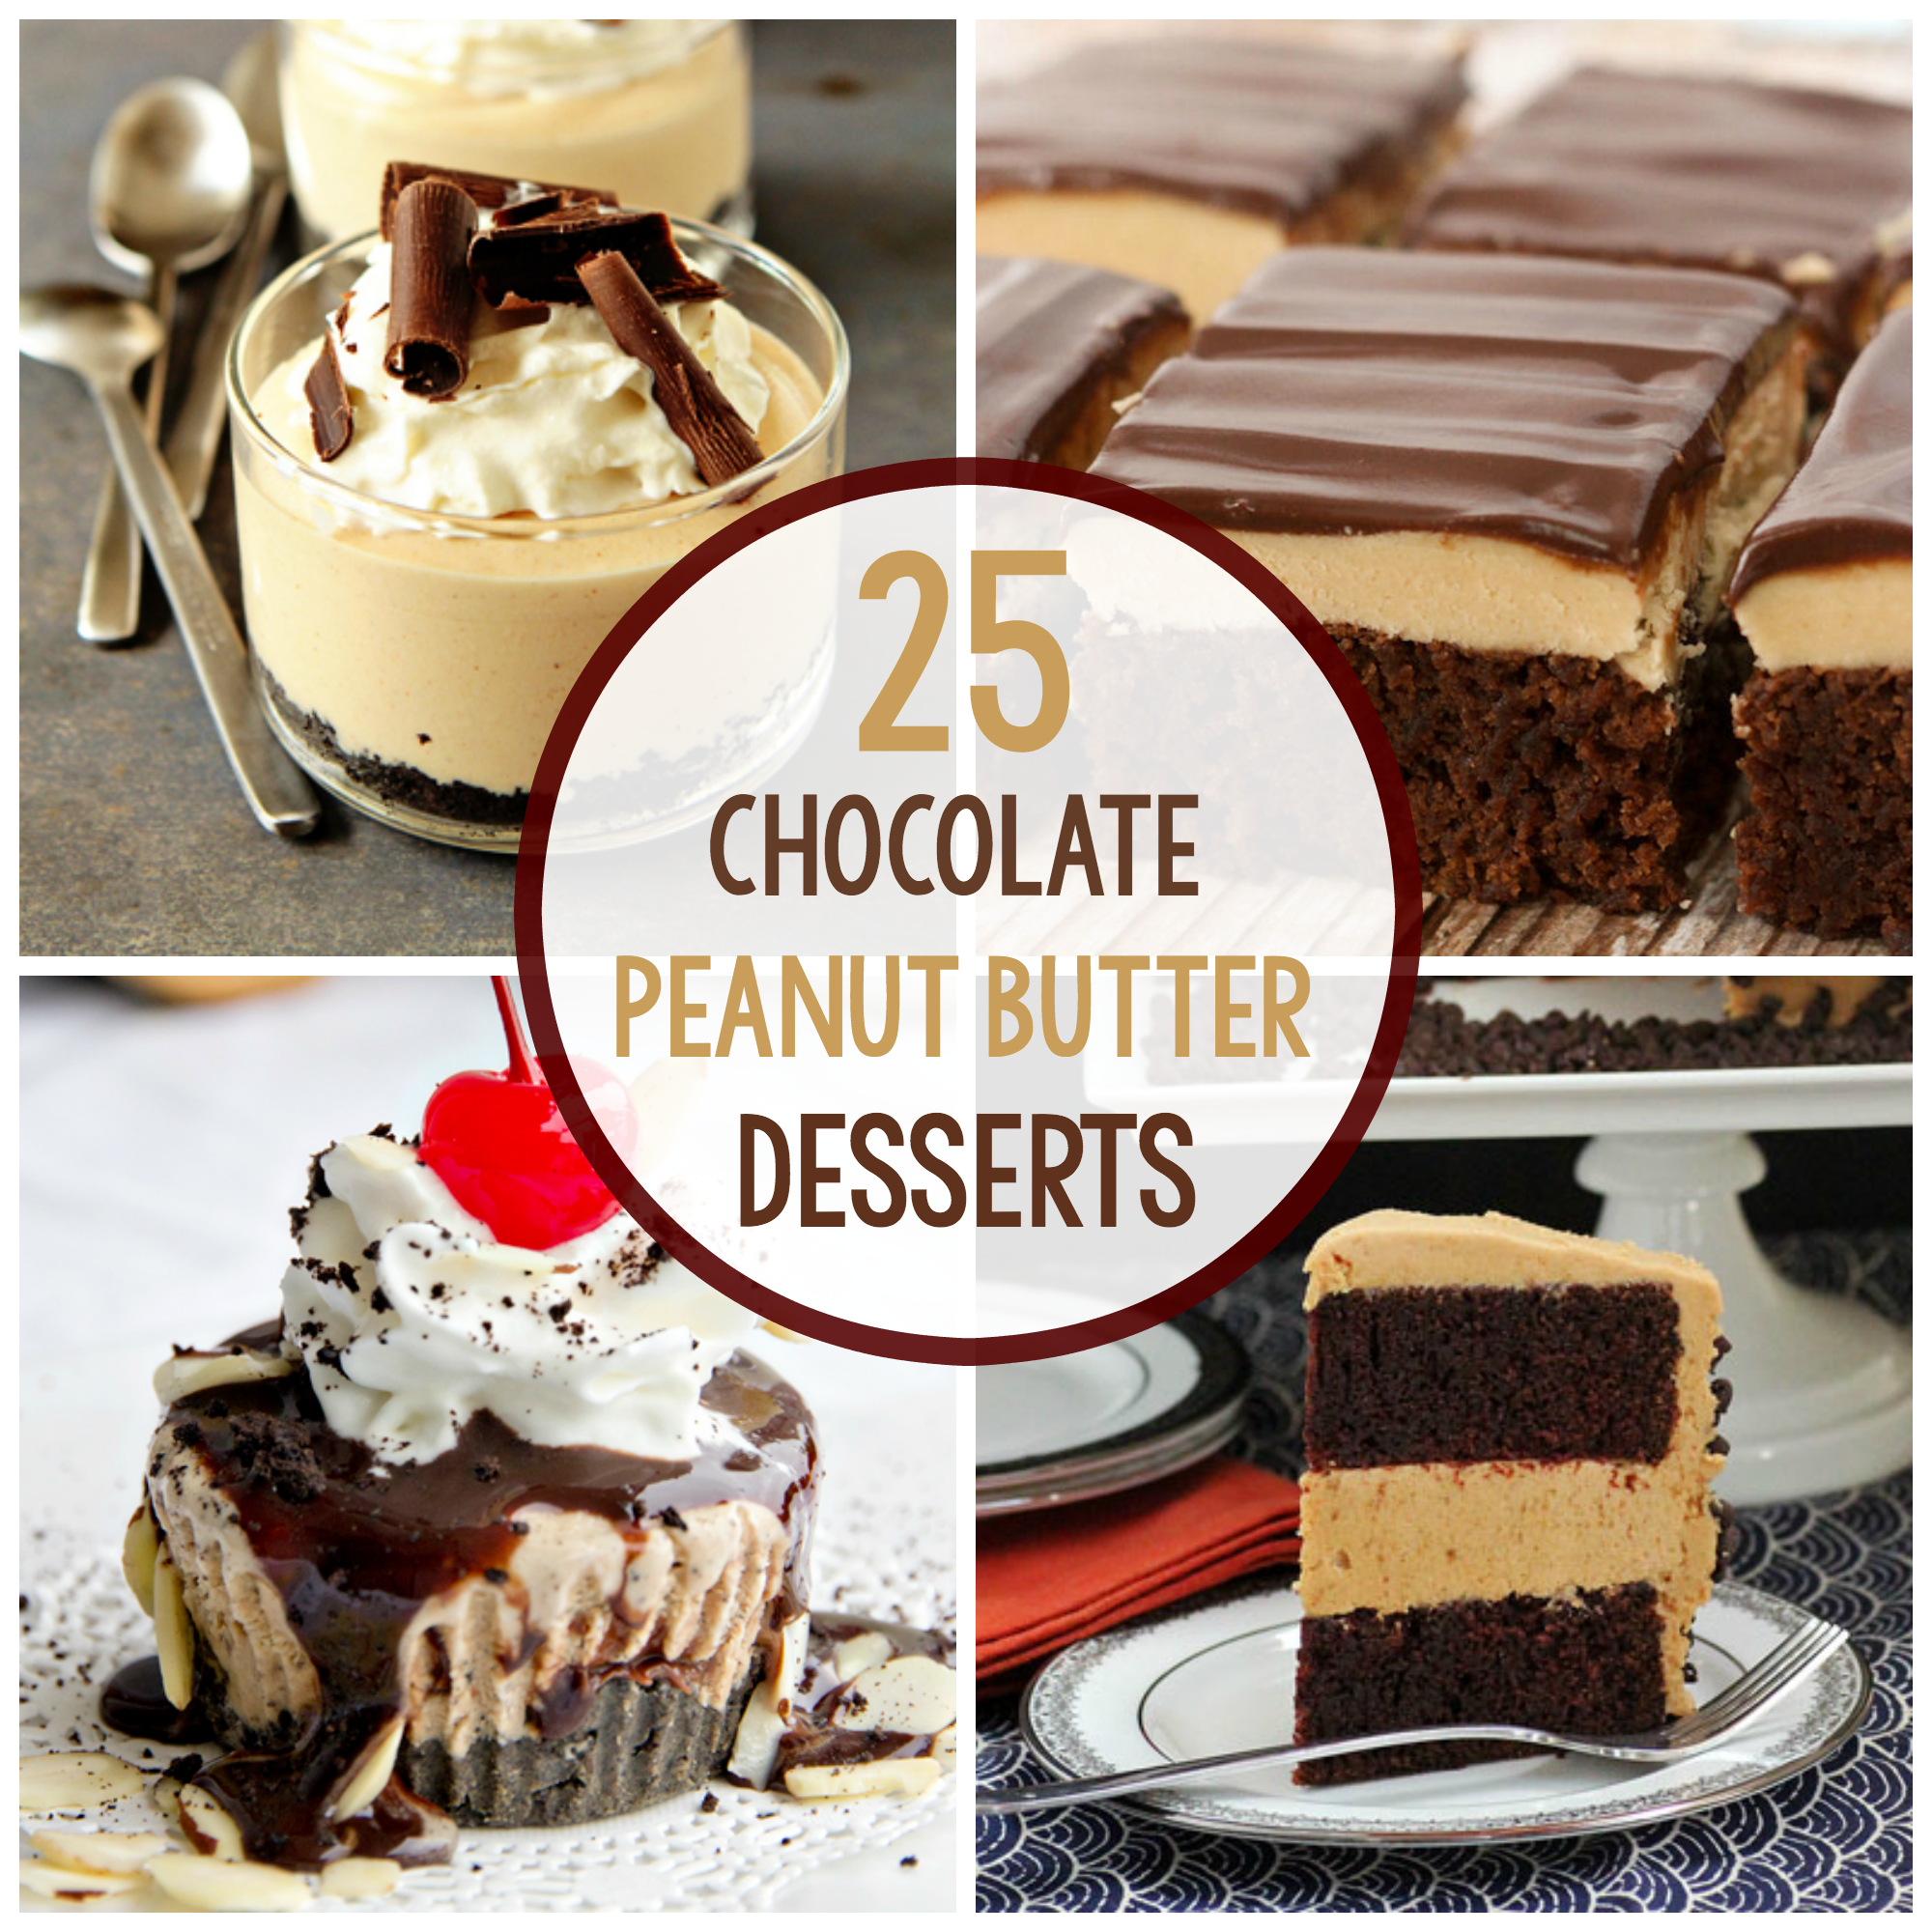 Chocolate Peanut Butter Dessert Recipes